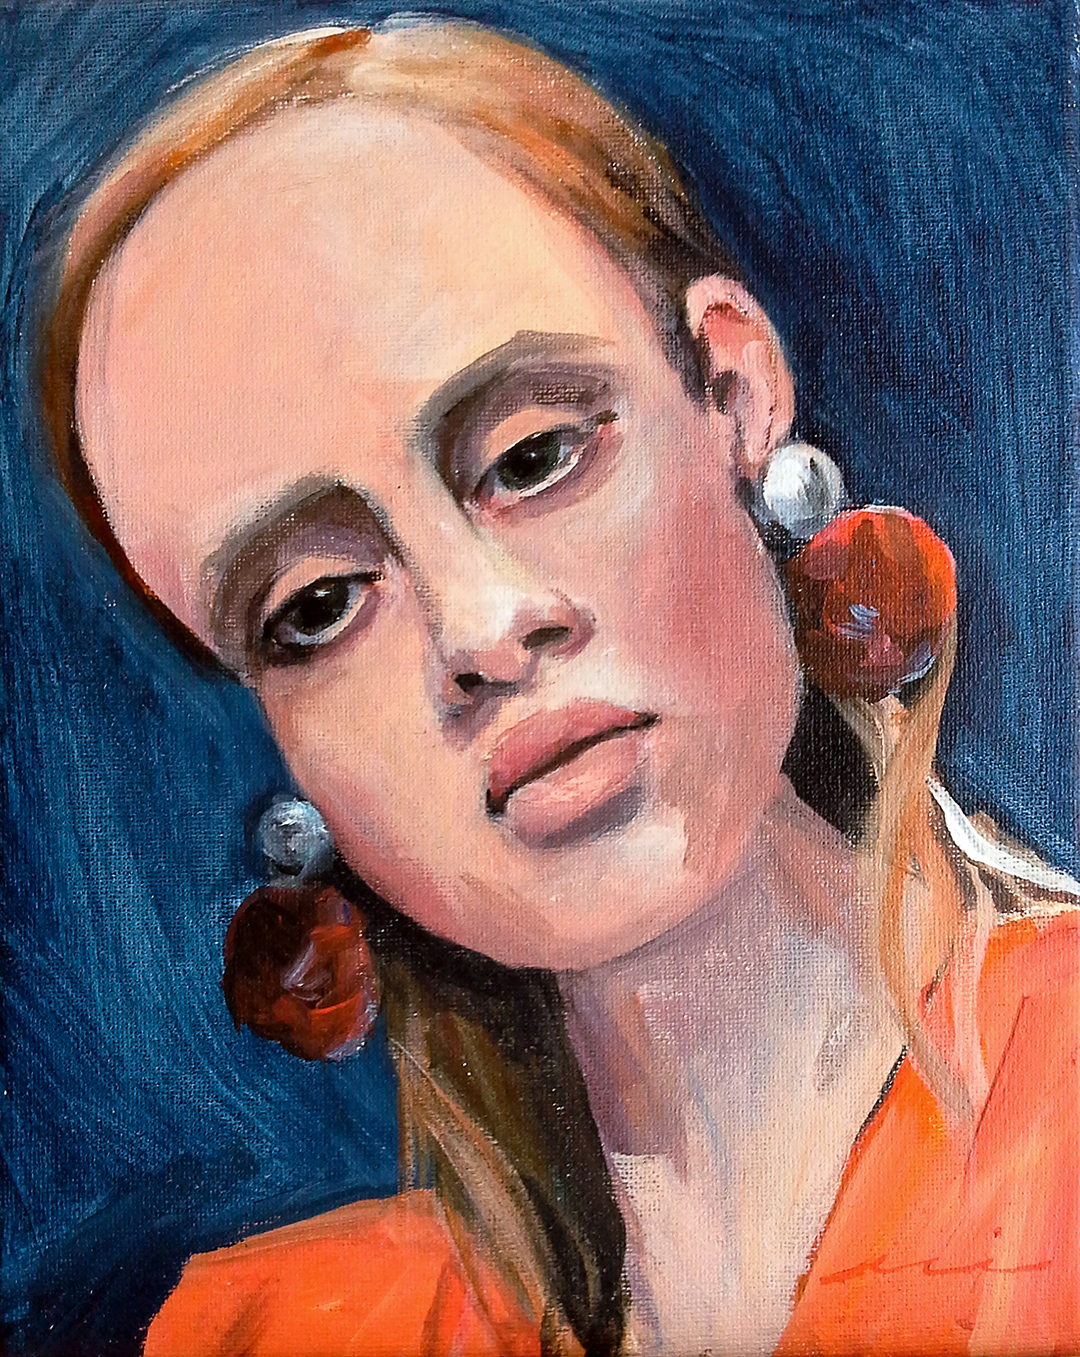 Portrait With Red, Blue, and Orange, 2018